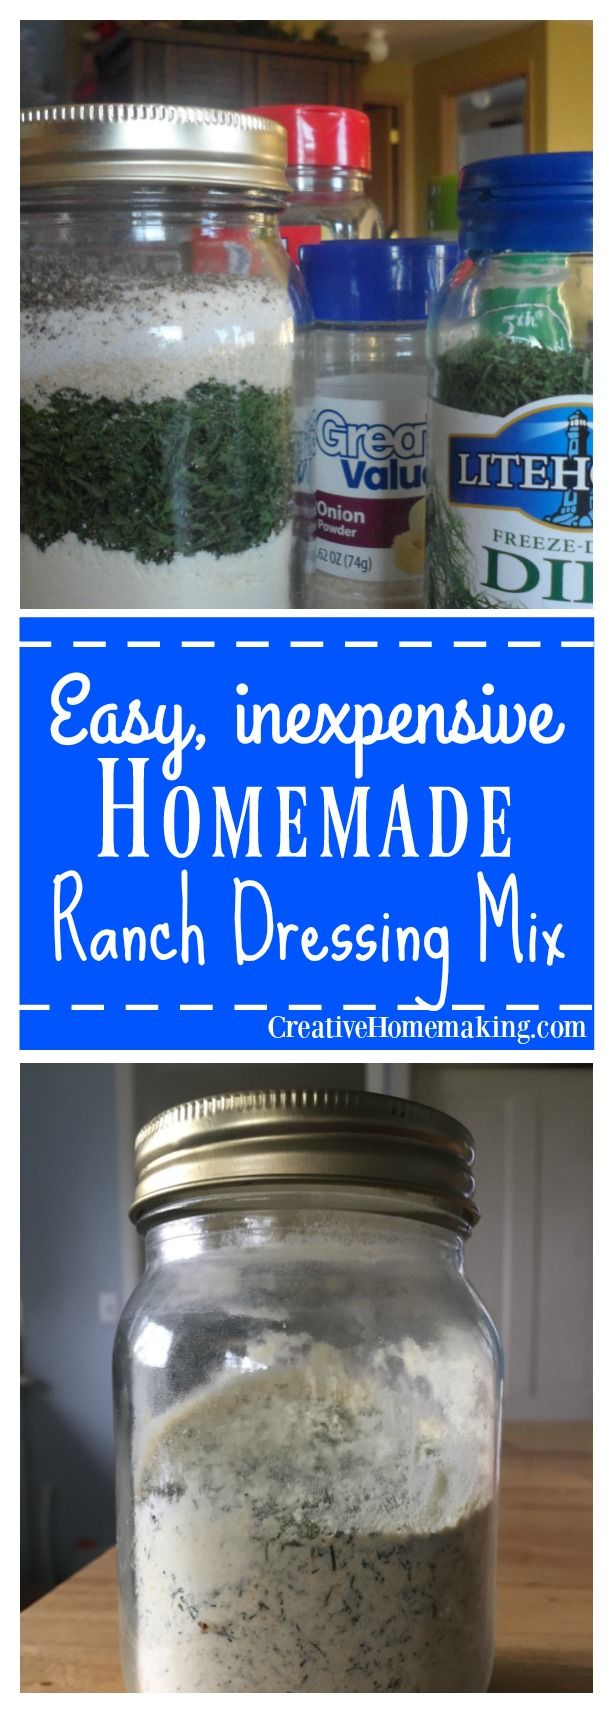 Easy homemade version of Hidden Valley ranch dressing mix. Can be used to make salad dressing or dip.